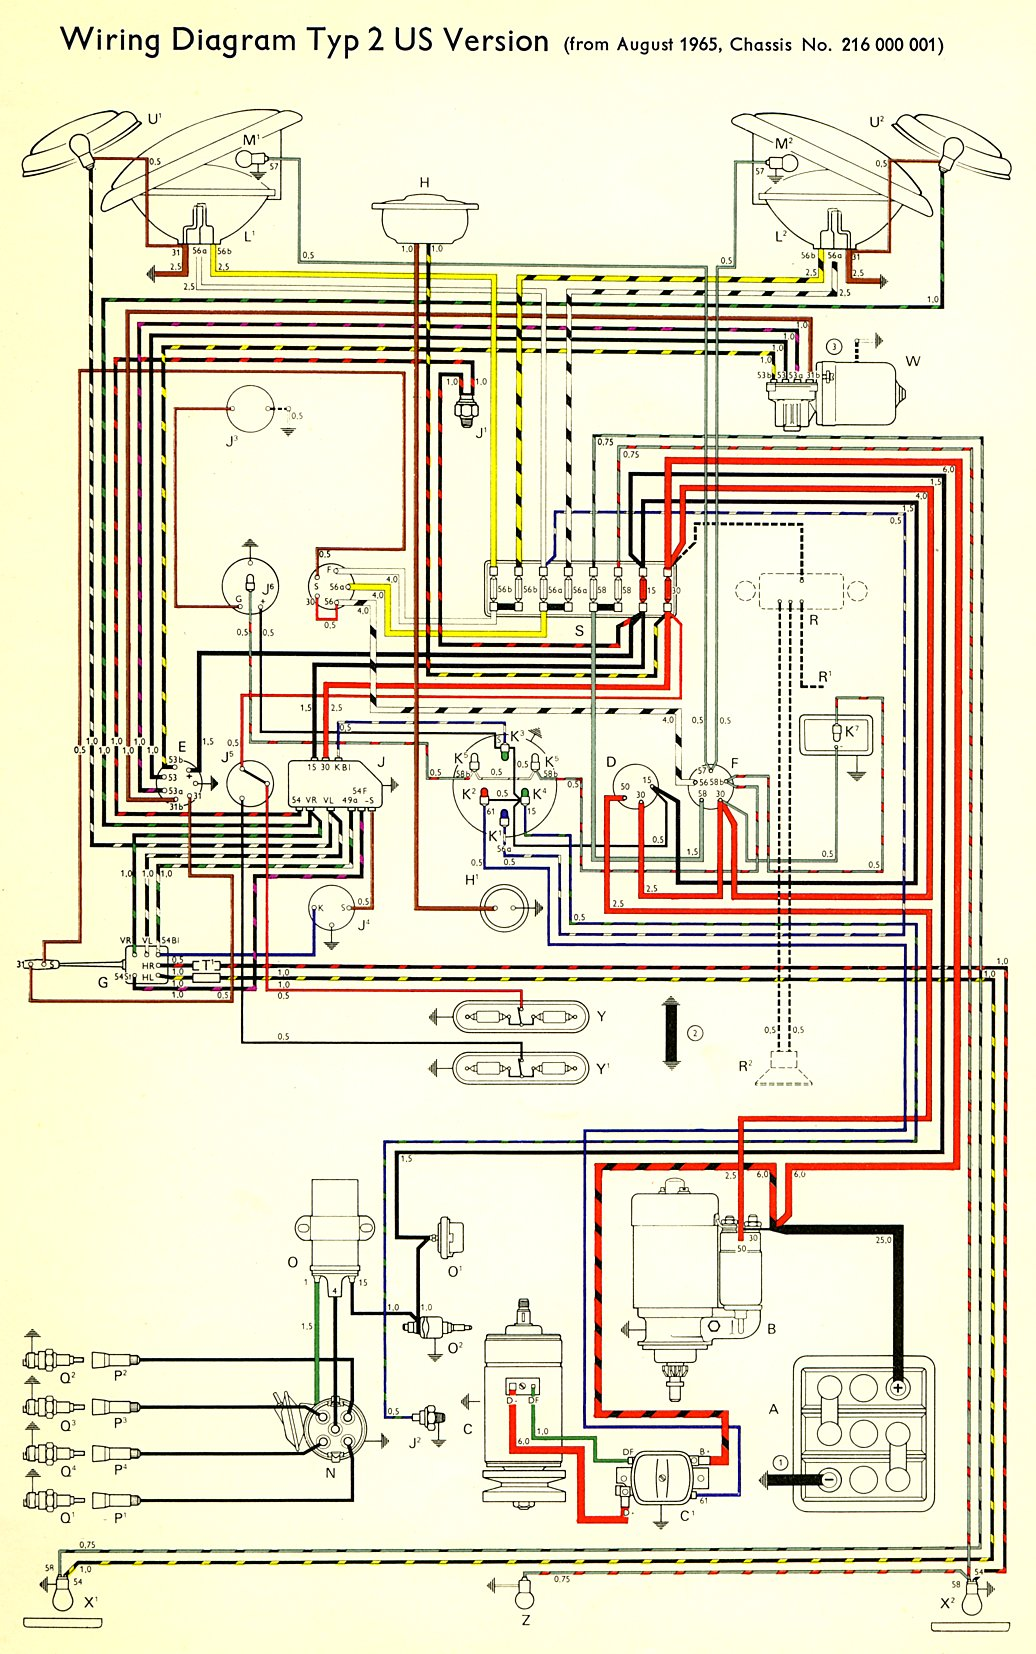 wiring diagram vw beetle 1967 wiring image wiring 1966 bus wiring diagram usa thegoldenbug com on wiring diagram vw beetle 1967